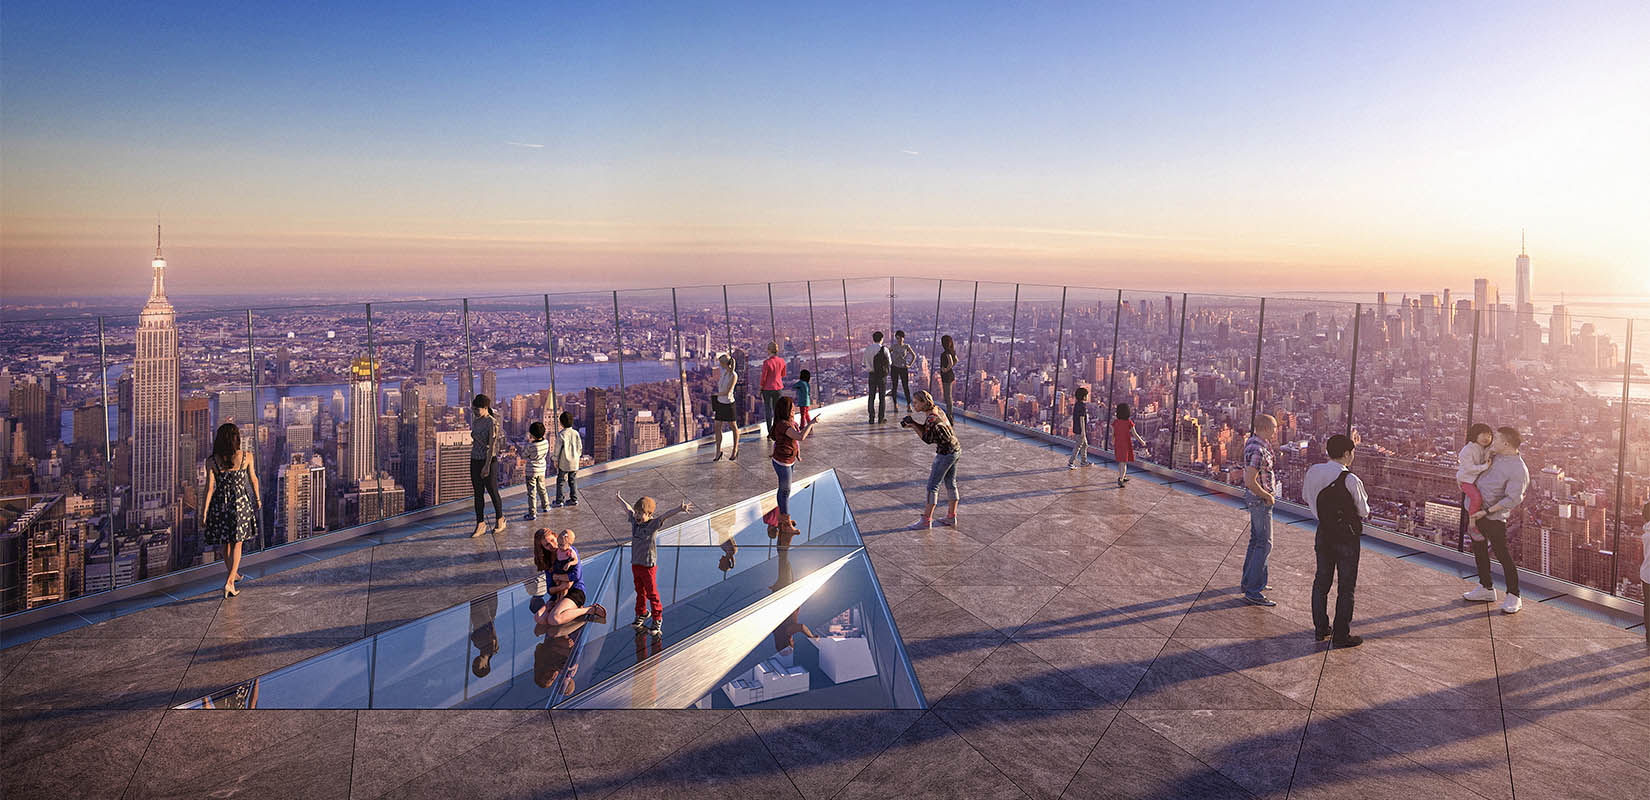 The Edge Observation Deck